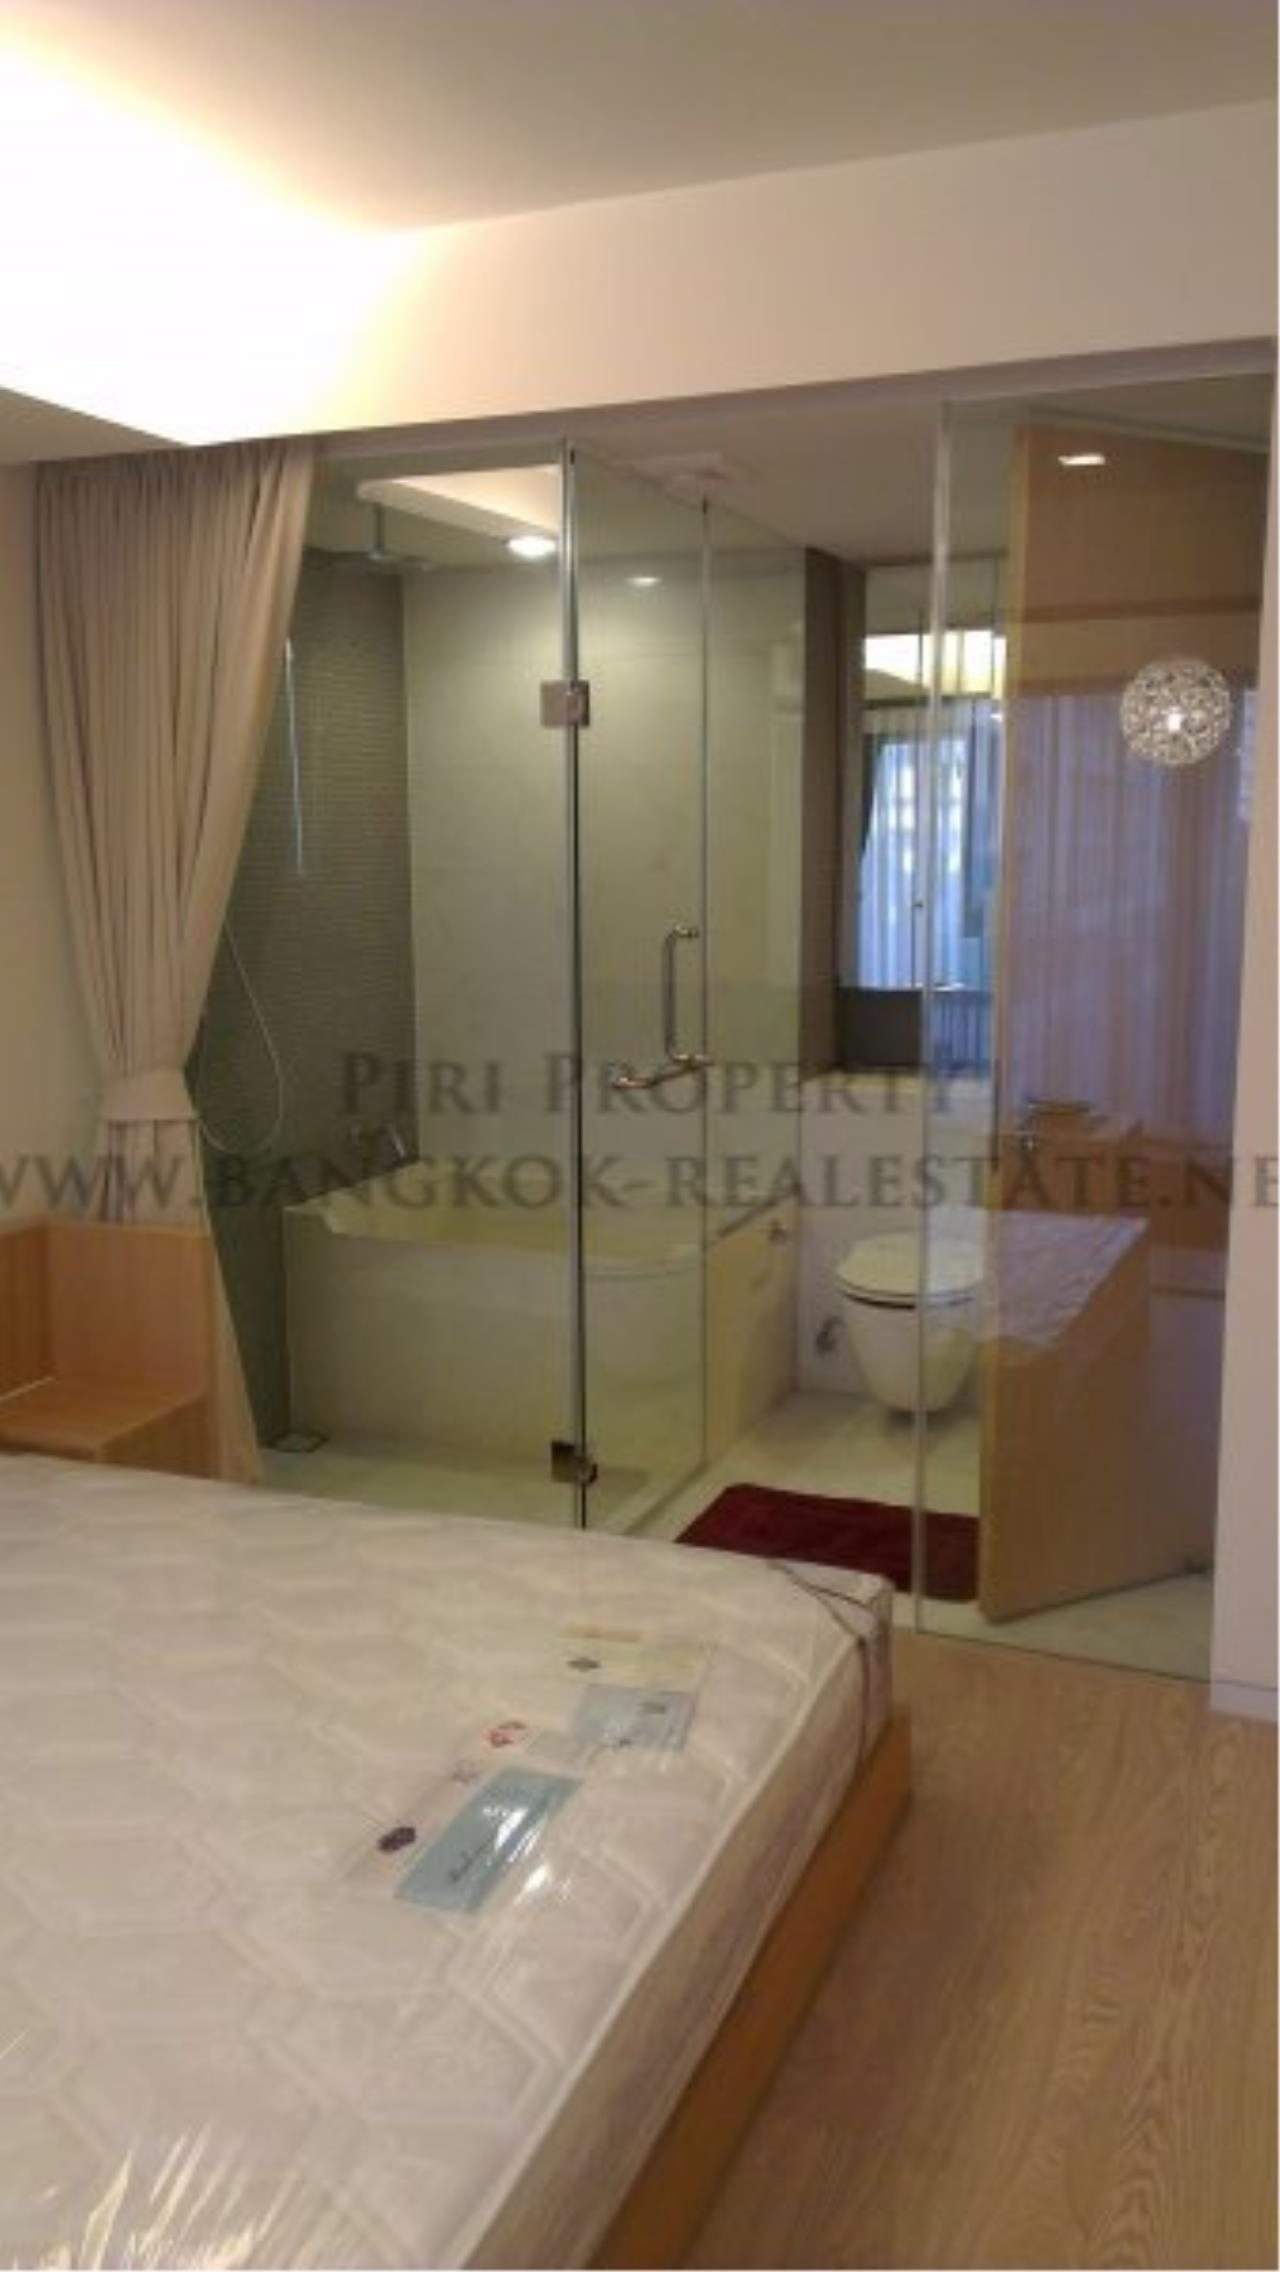 Piri Property Agency's Siamese Gioa - Modern Condo in Phrom Phong for Rent 6